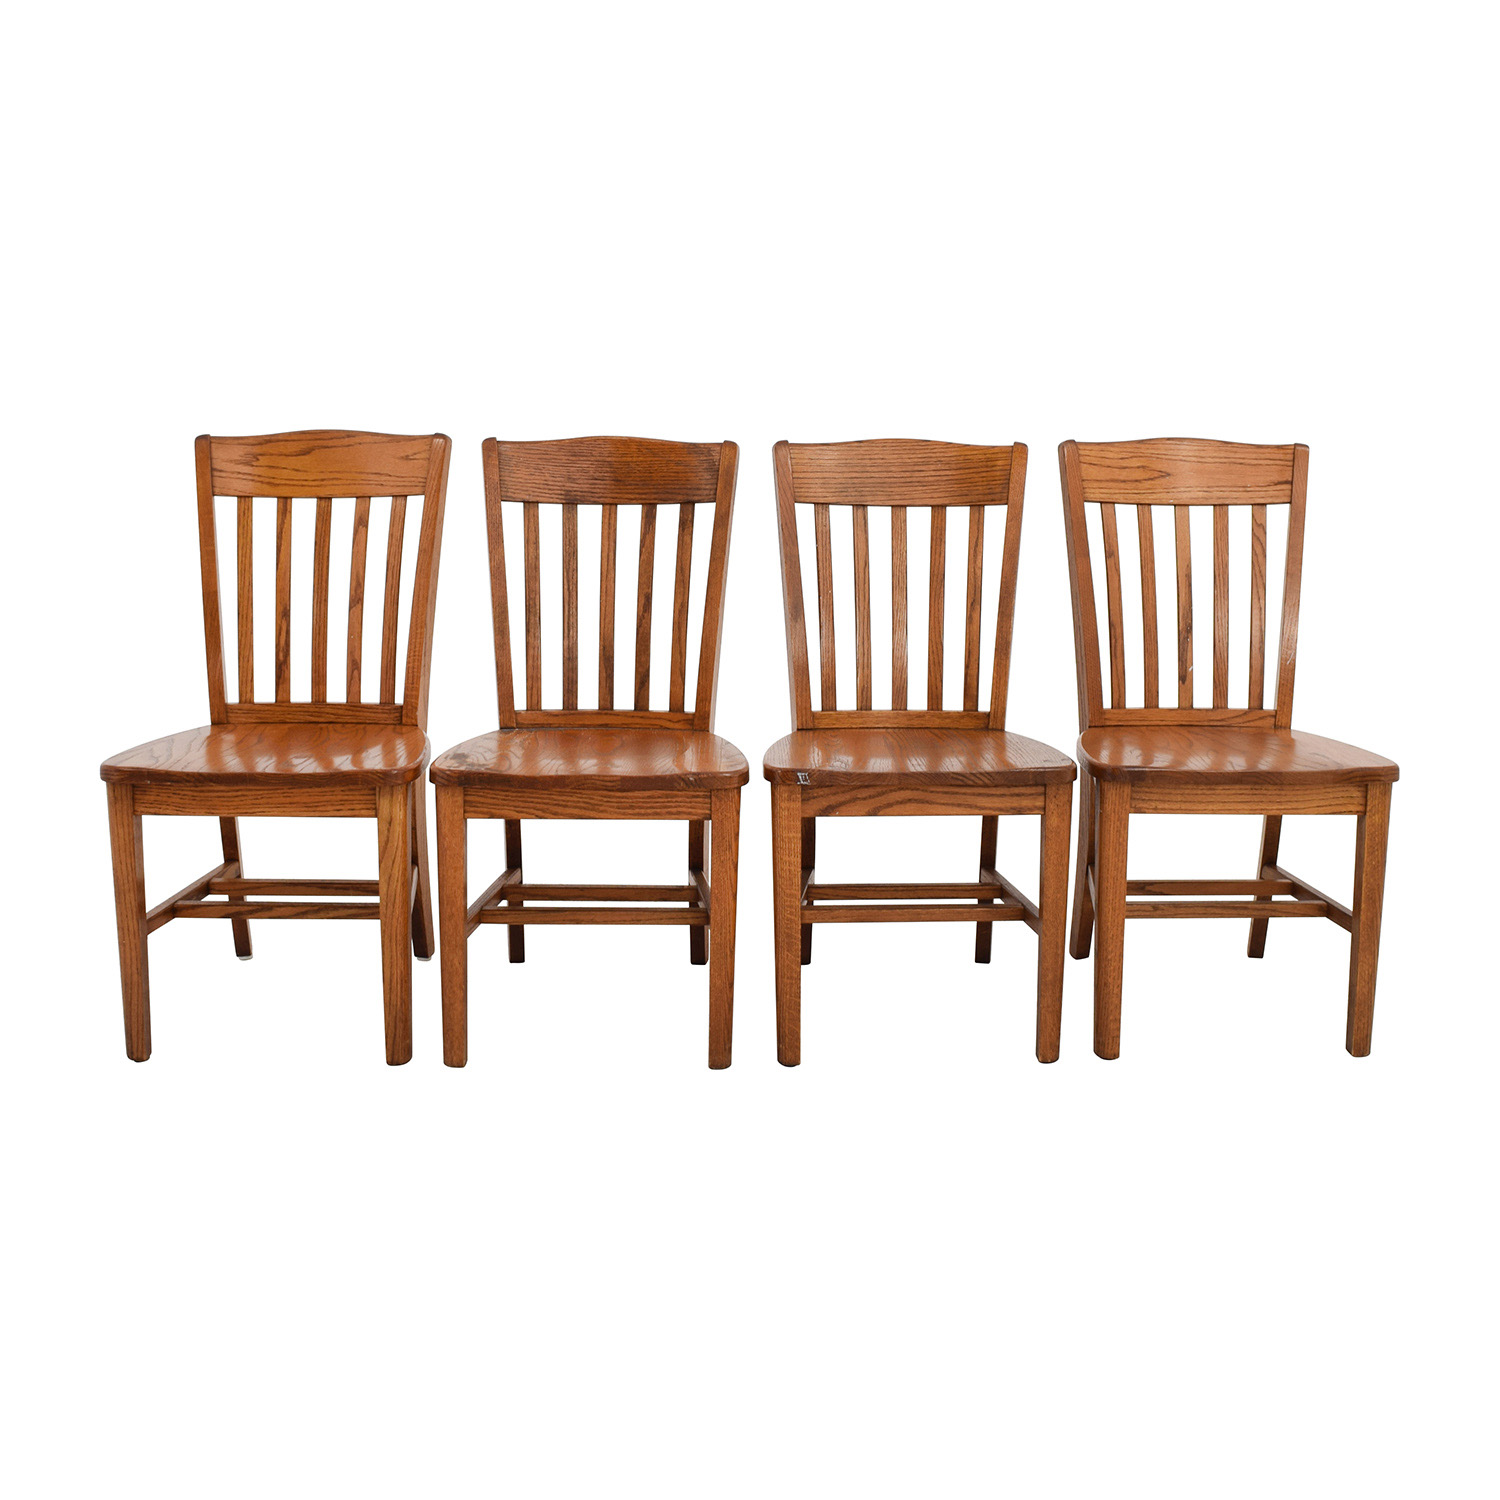 Four Brown Slat Back Wood Chairs used